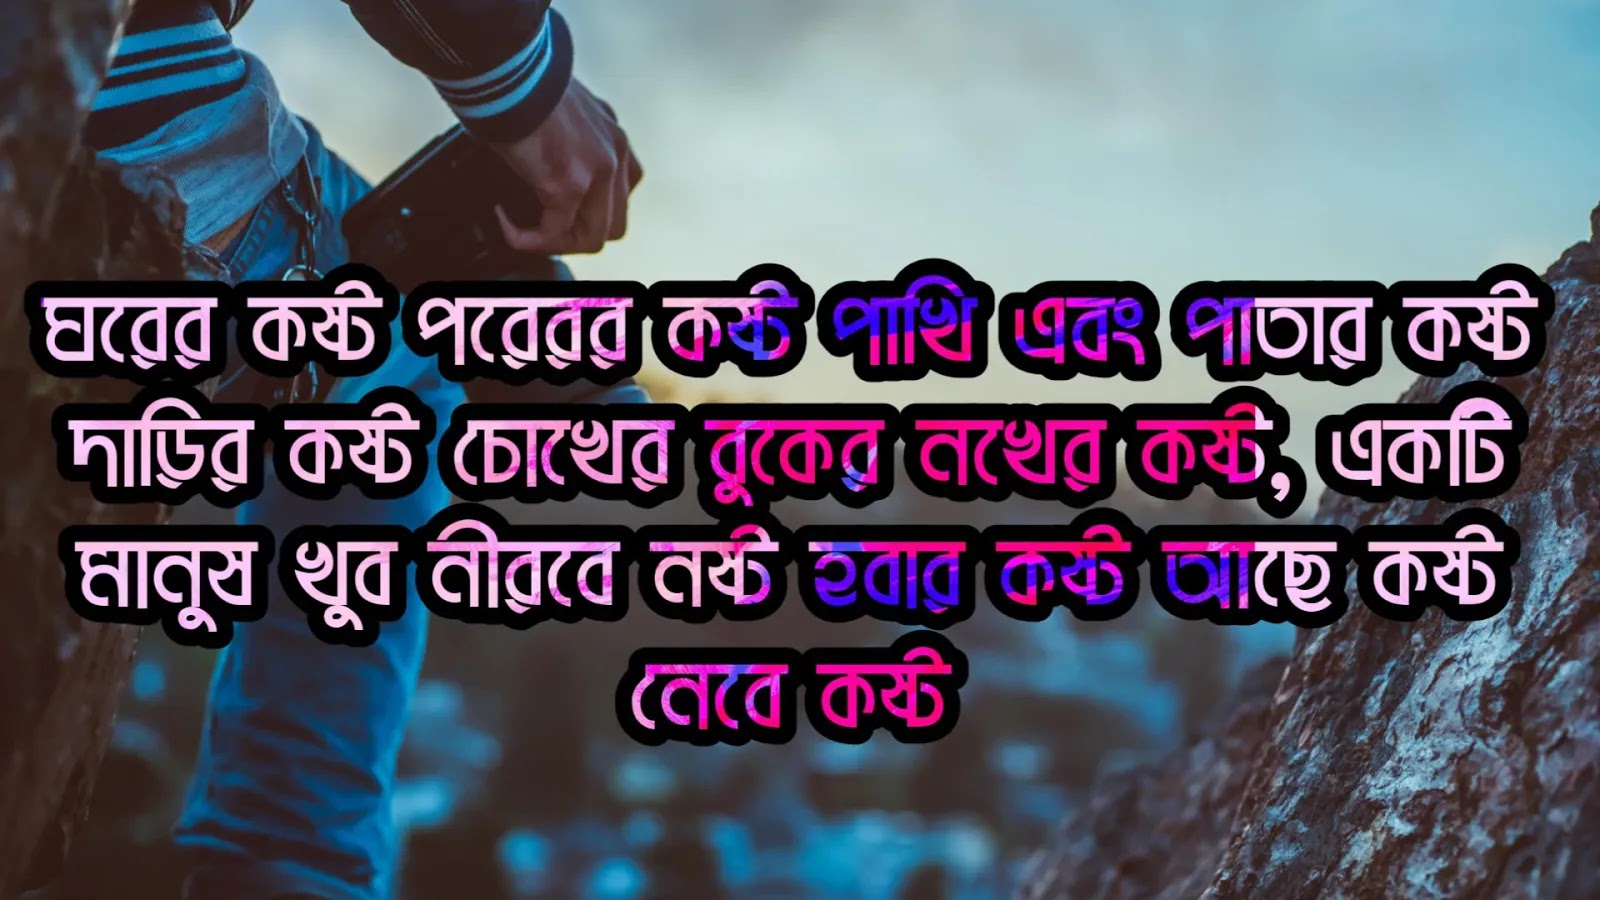 romantic love quotes in bengali download